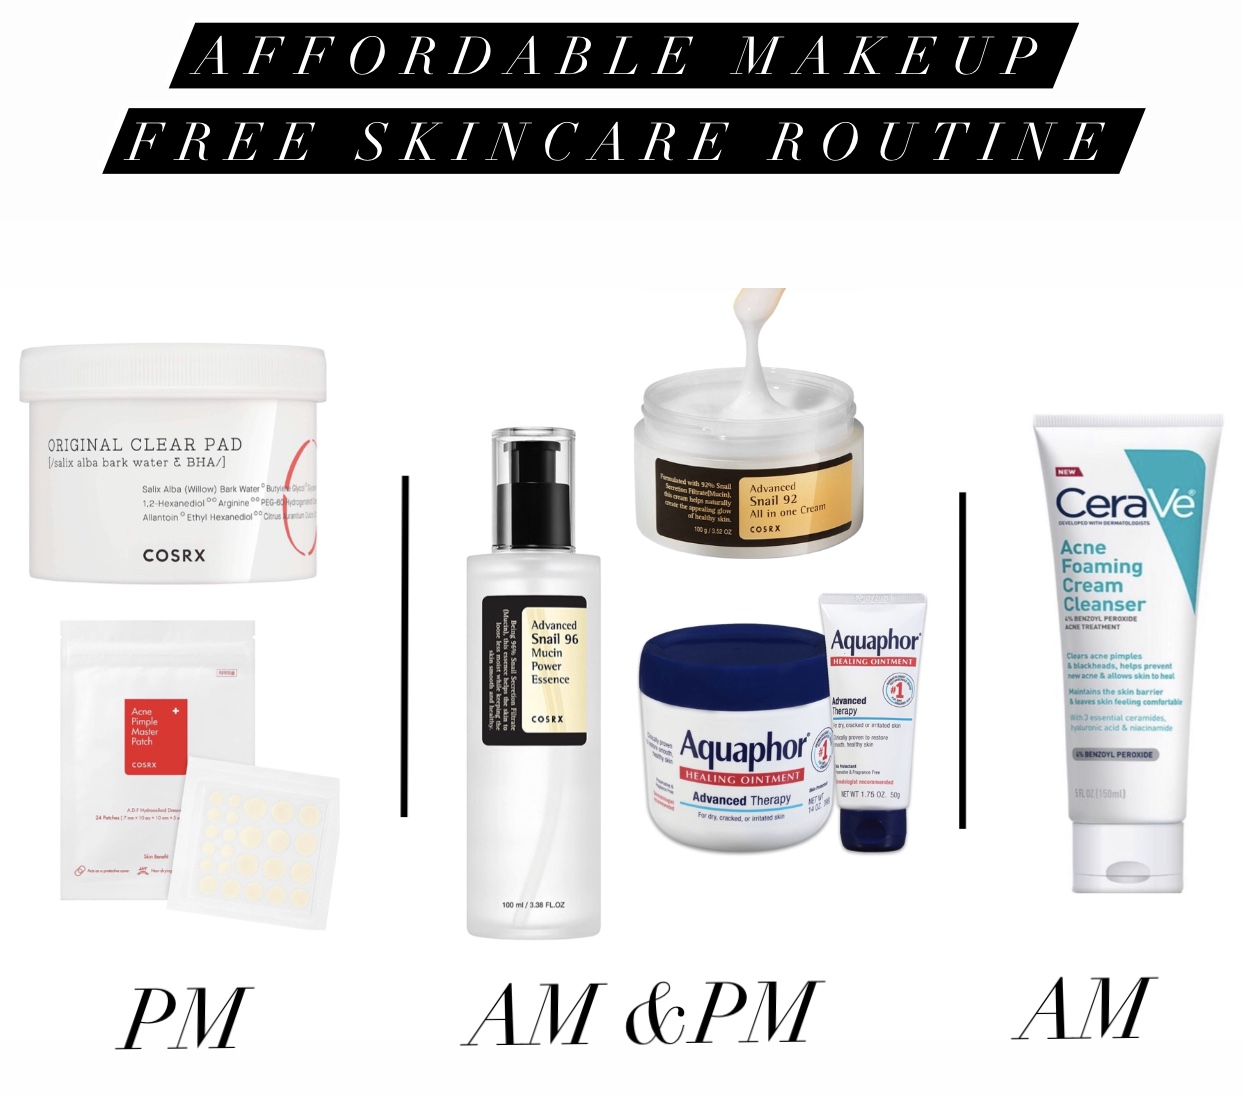 Current Accordable Makeup Free Skincare Routine